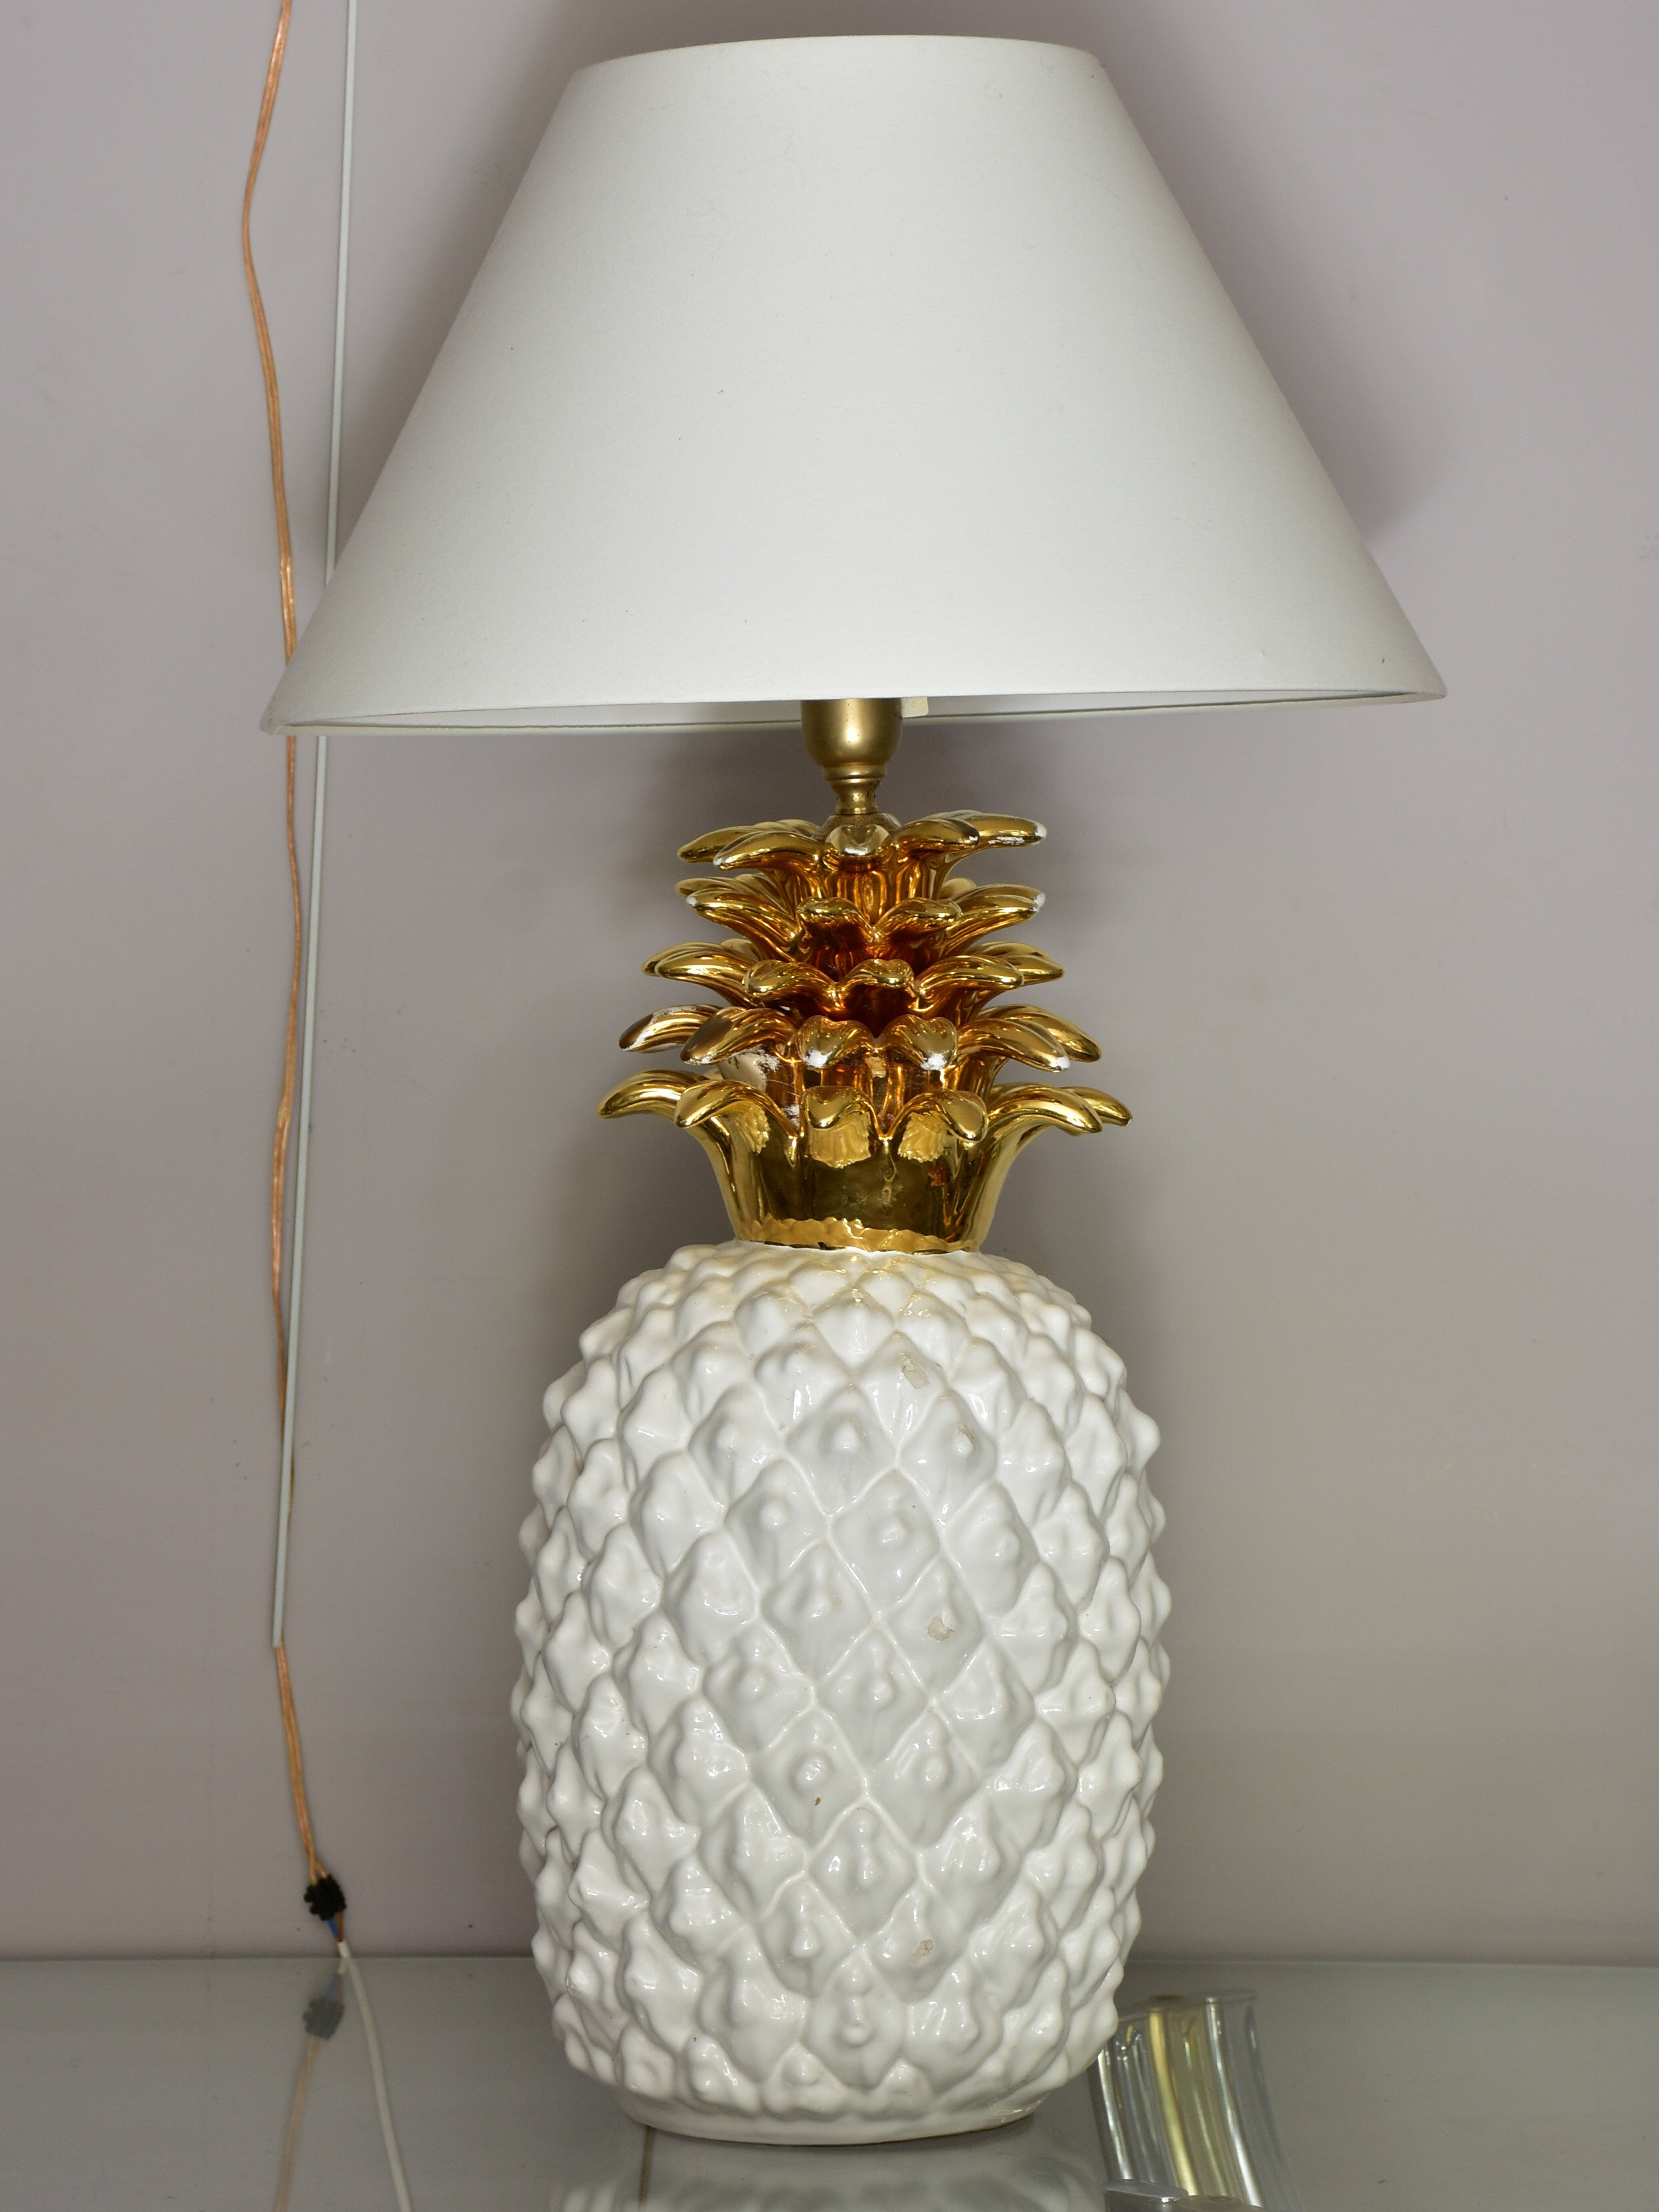 Large vintage pineapple lamp in the style of Maison Charles